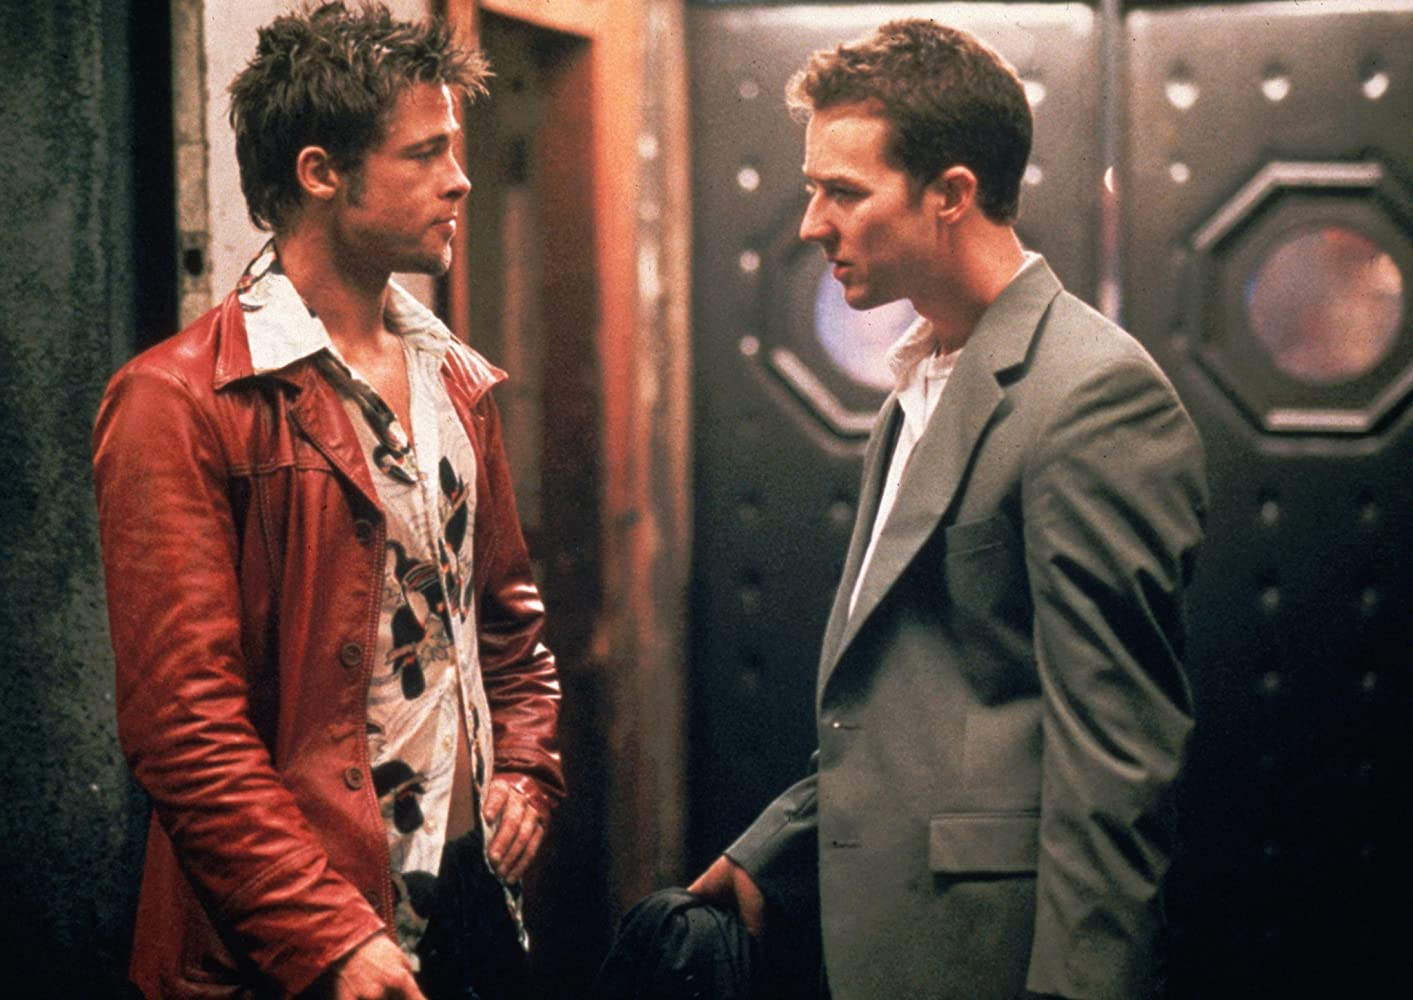 fight club identity misrecognition and maculinity Wiker, jacob, romance and identity in flight club (2013)etd archive paper 502 romance and identity in fight club jacob wiker bachelor of.